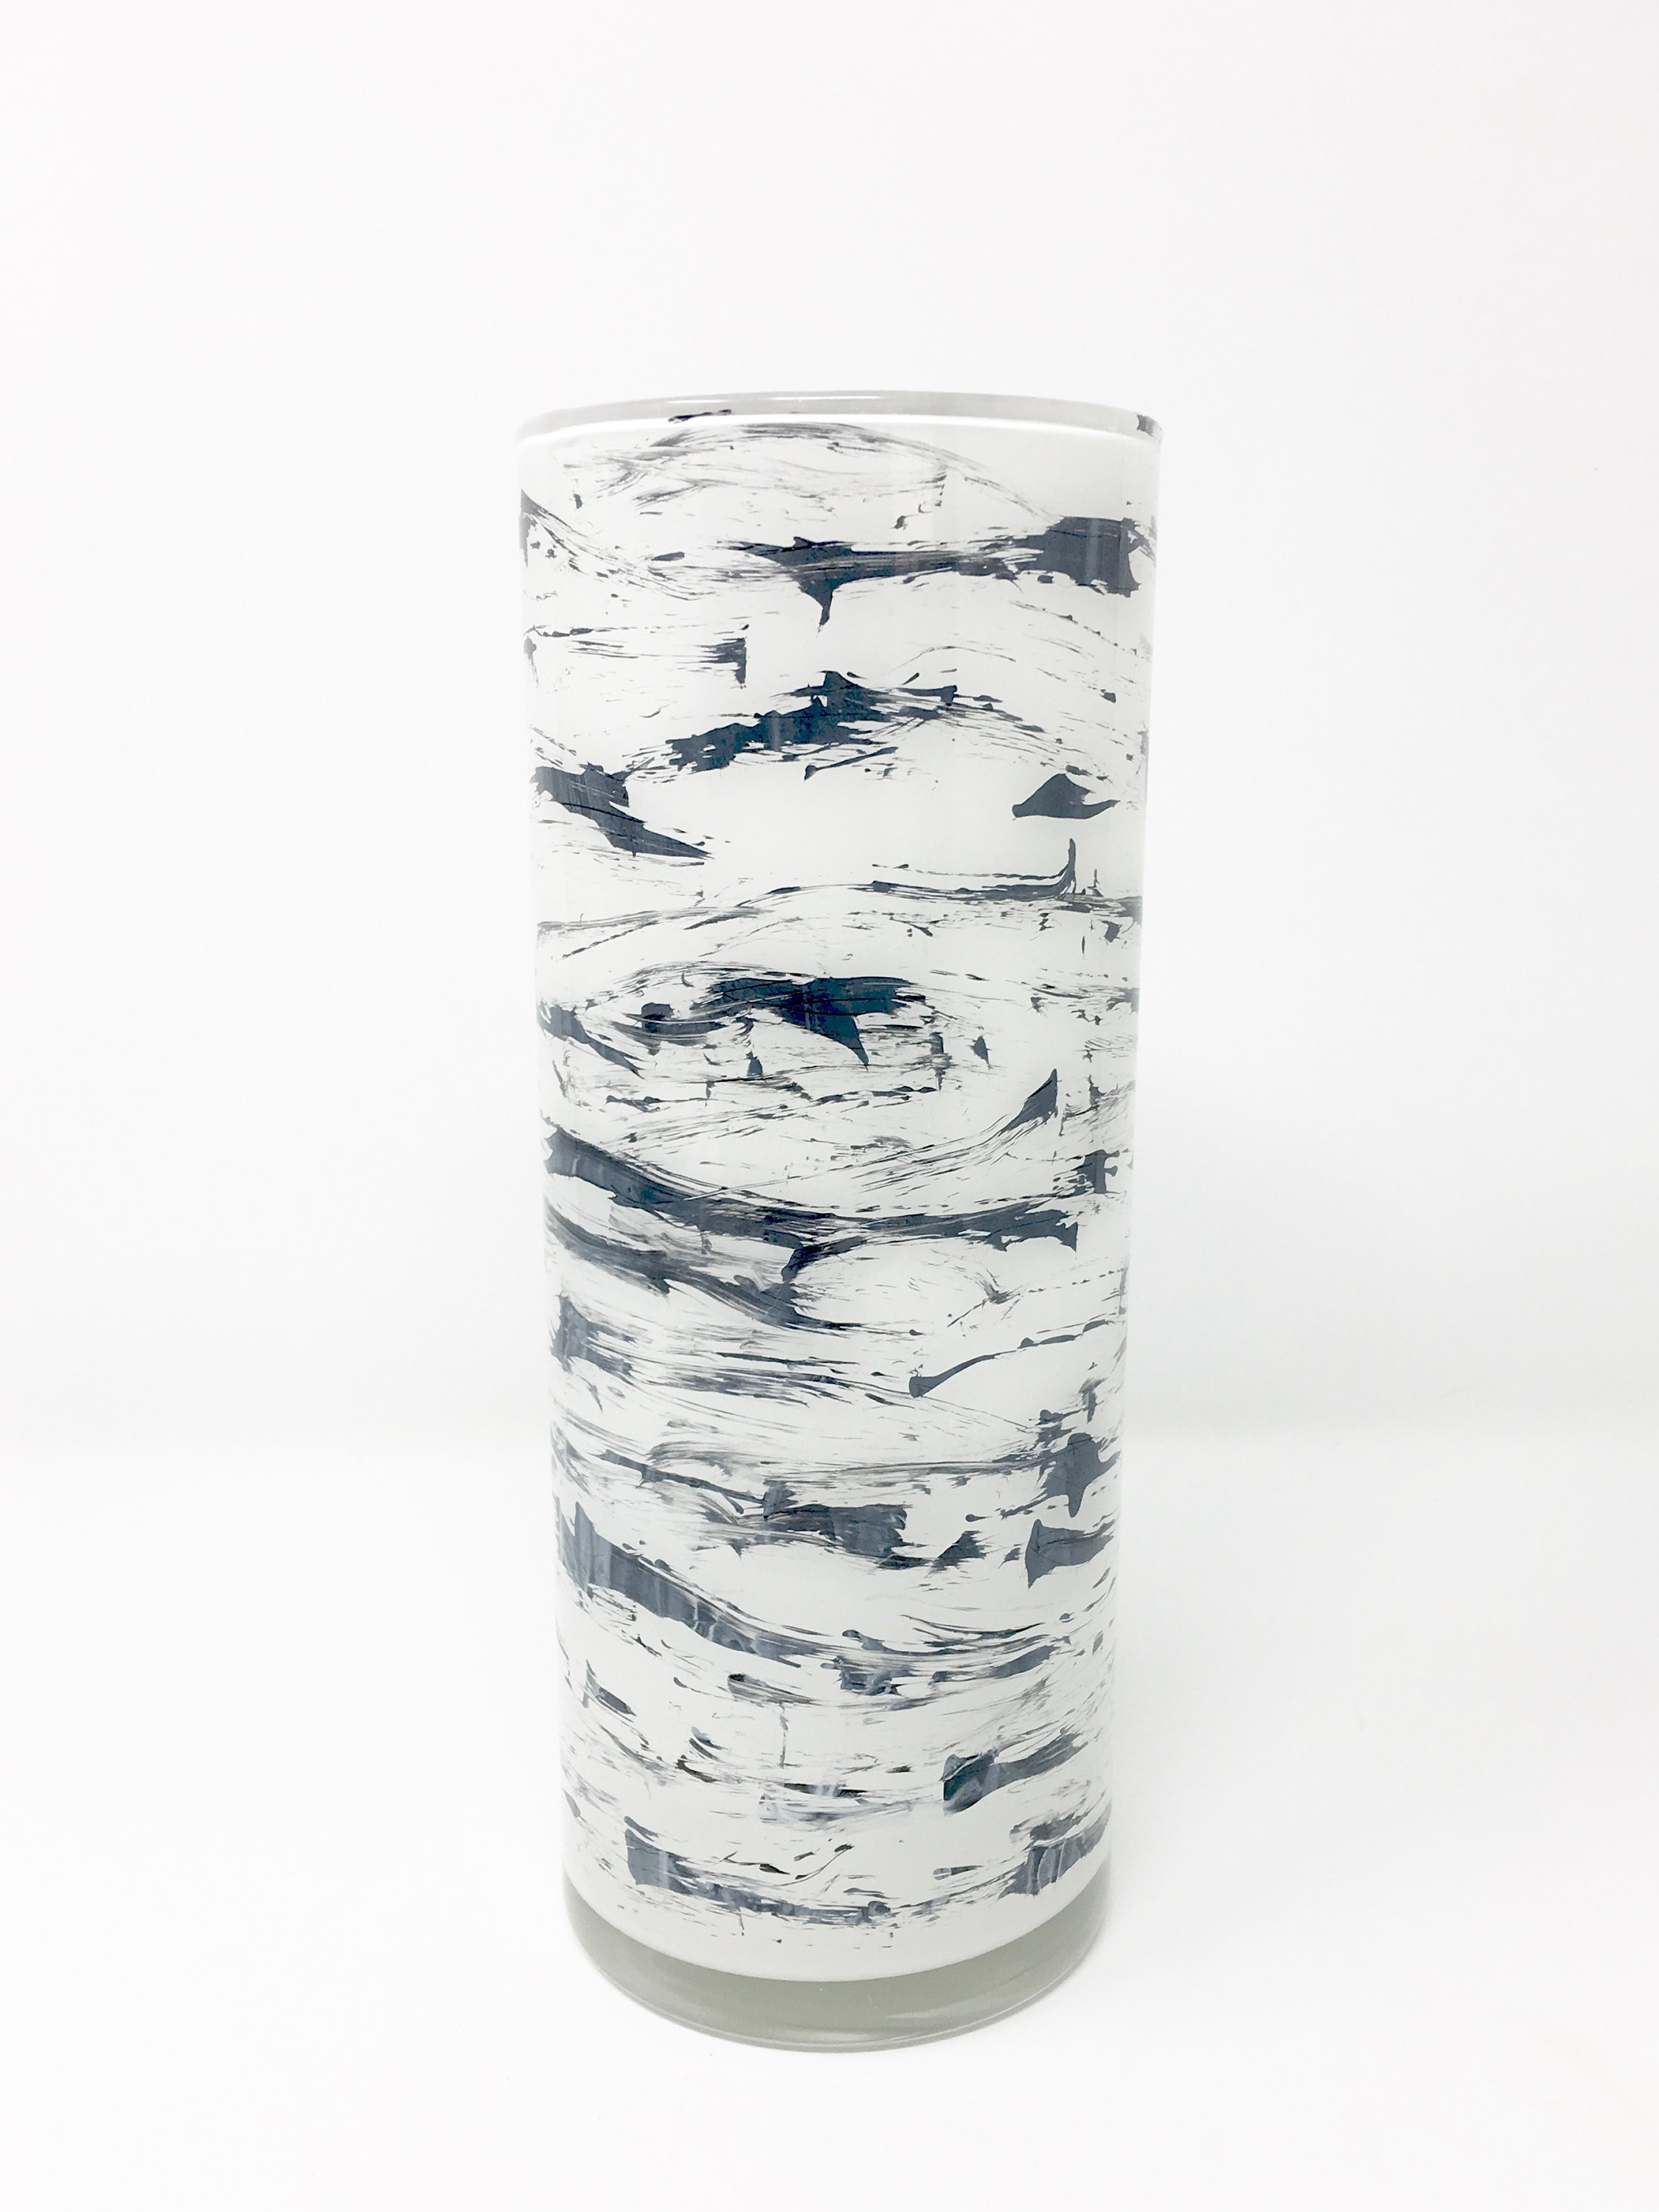 25 Famous Glass Cowboy Boot Vase 2021 free download glass cowboy boot vase of dark grey and white cylinder vase hand painted glass art etsy with regard to image 0